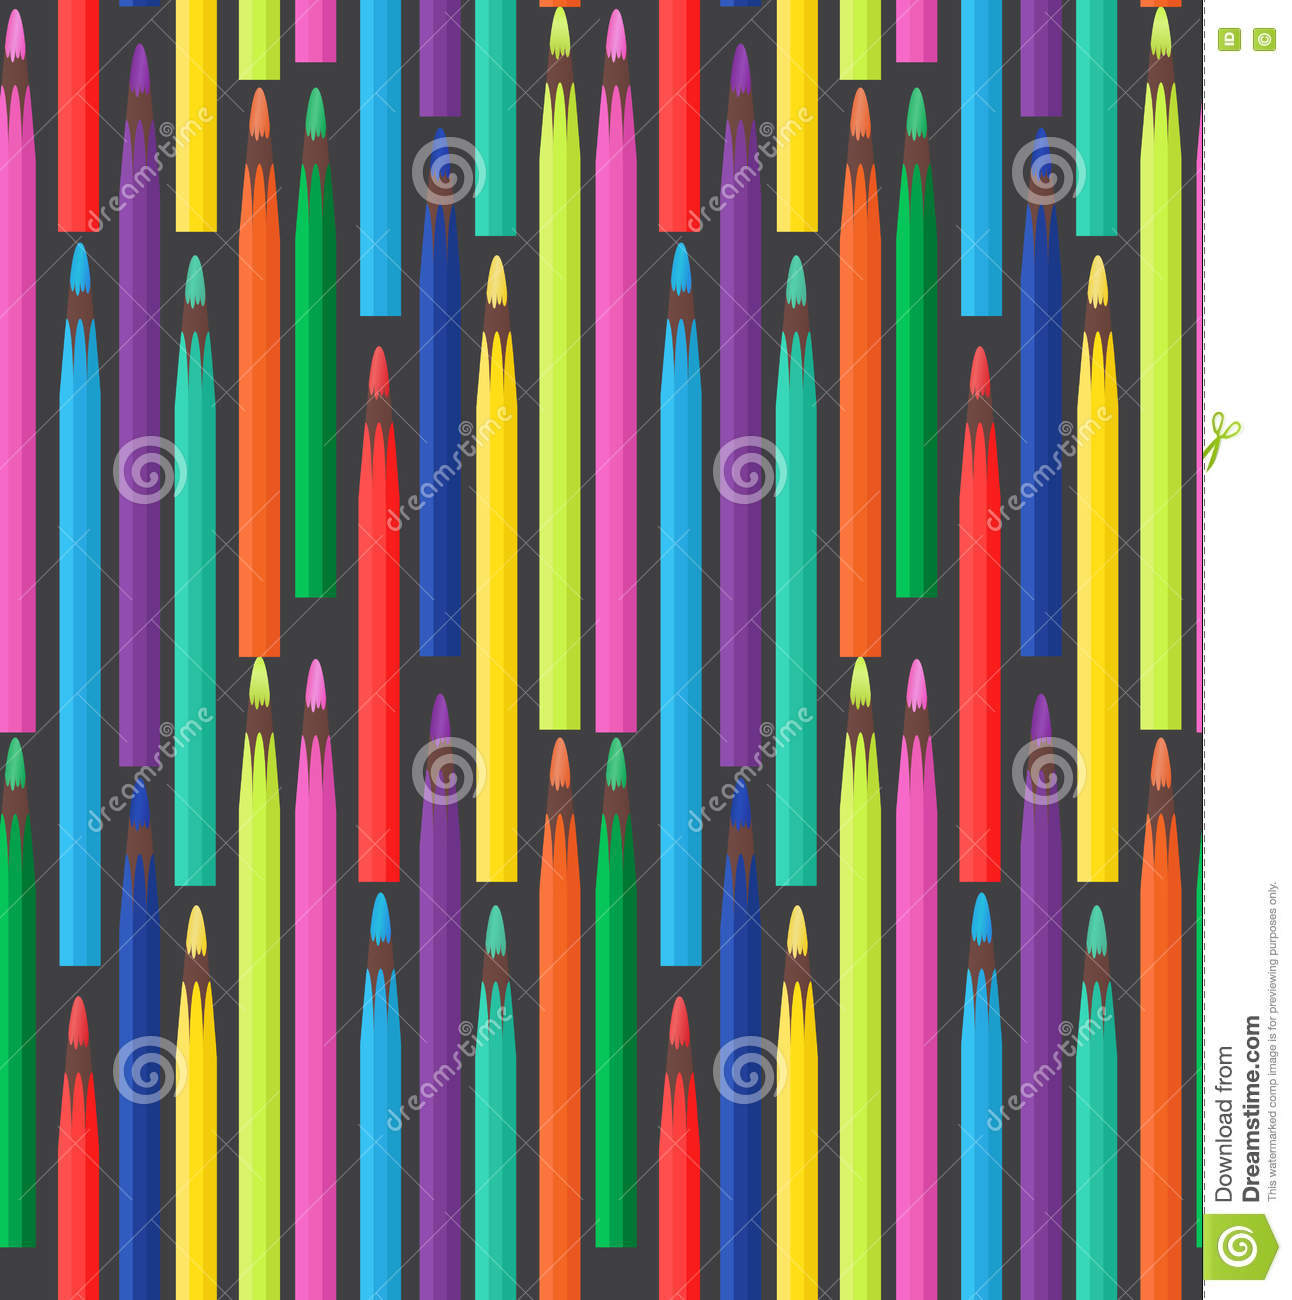 Seamless Texture With Colored Pencils. Stock Vector ...